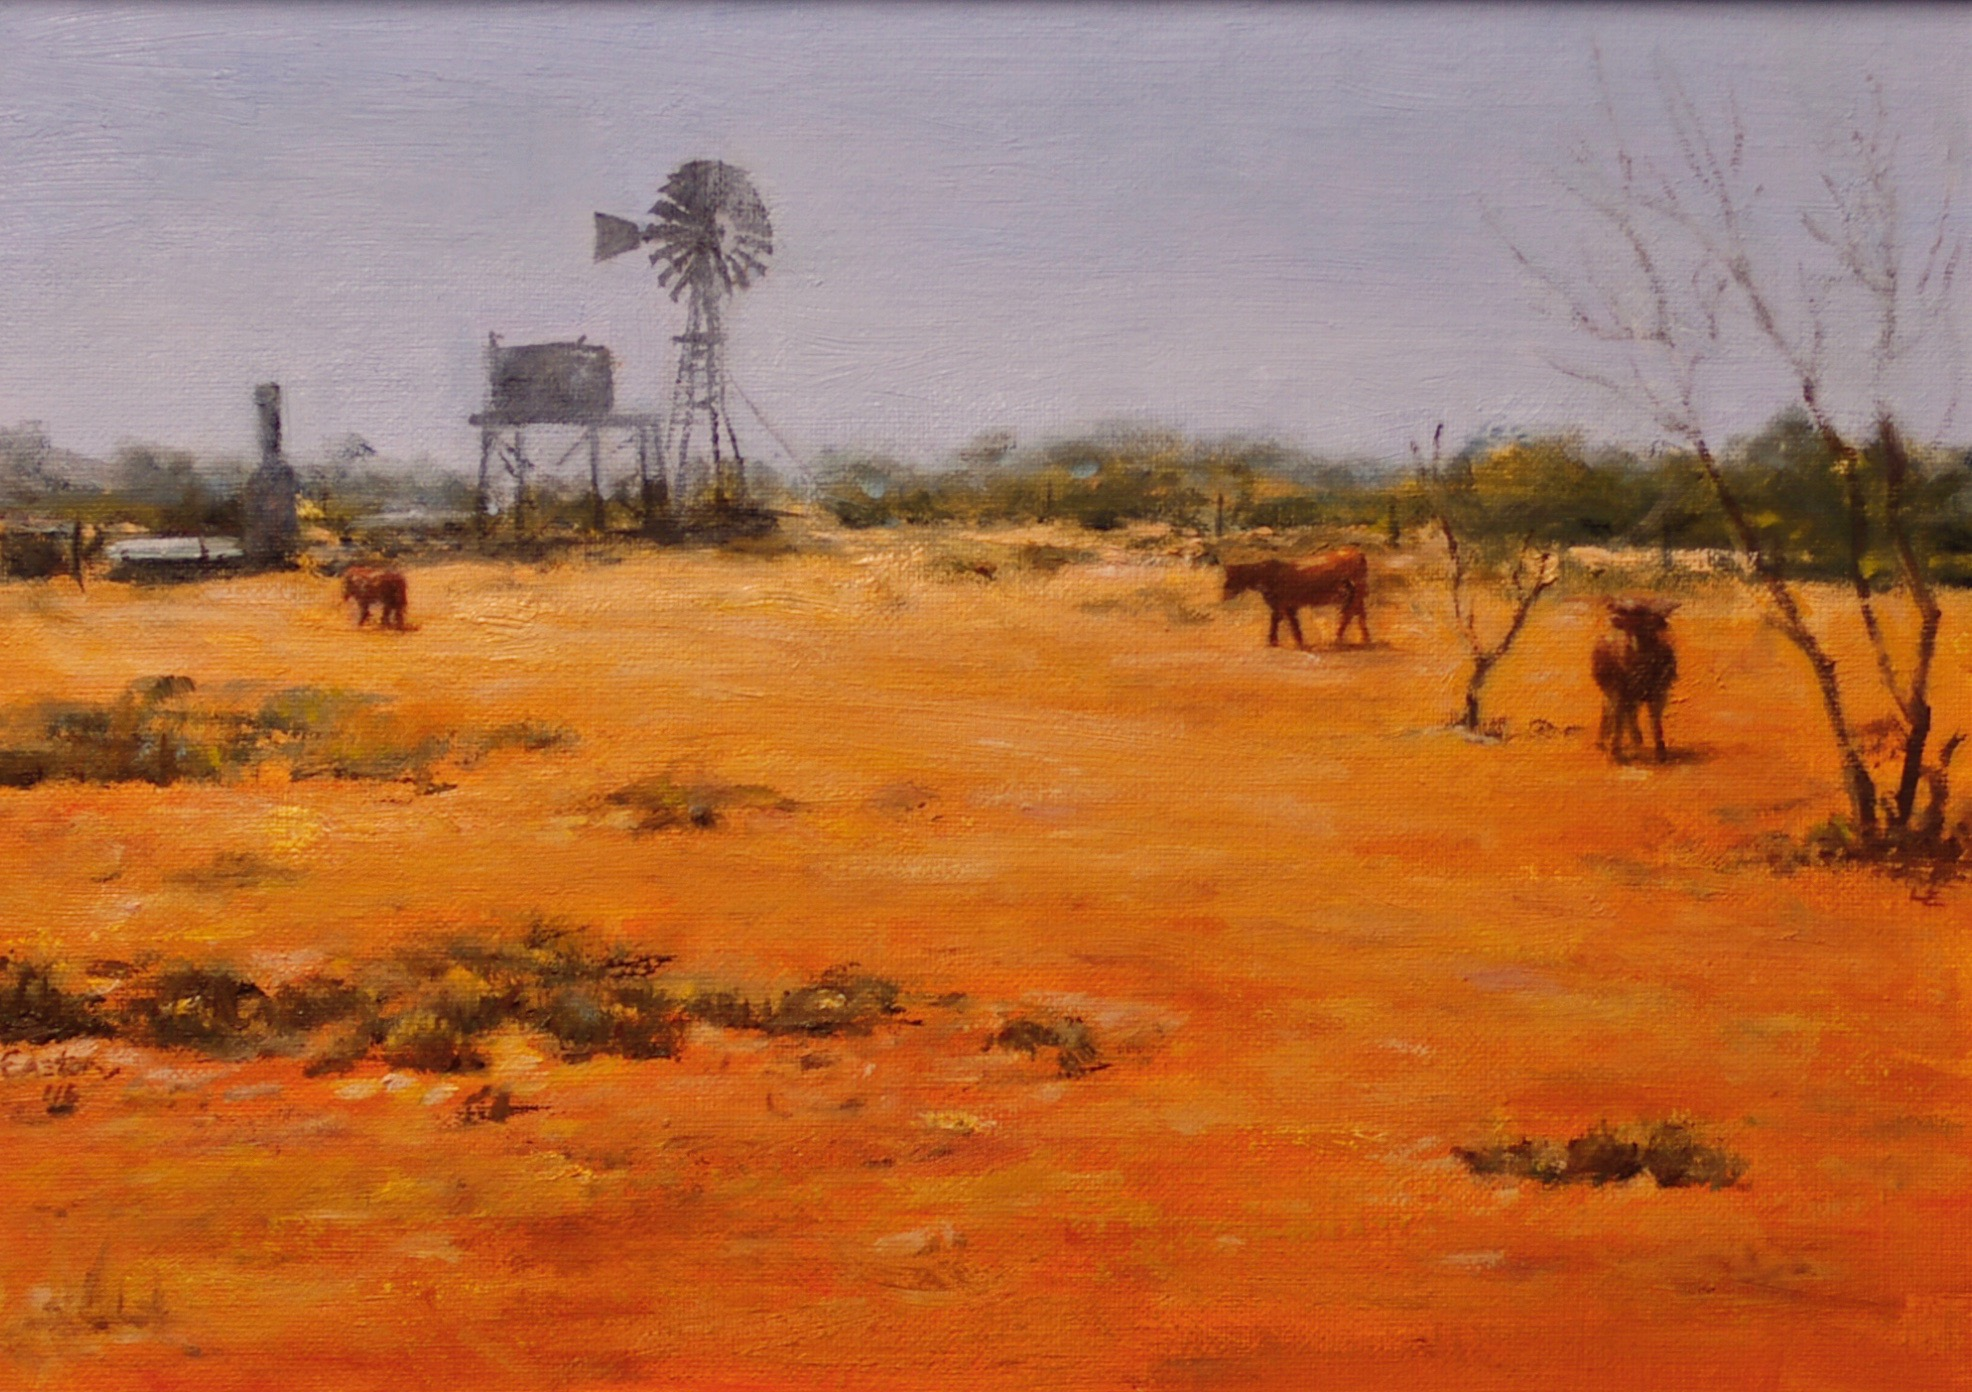 Roaming cattle, outback, Western Australia